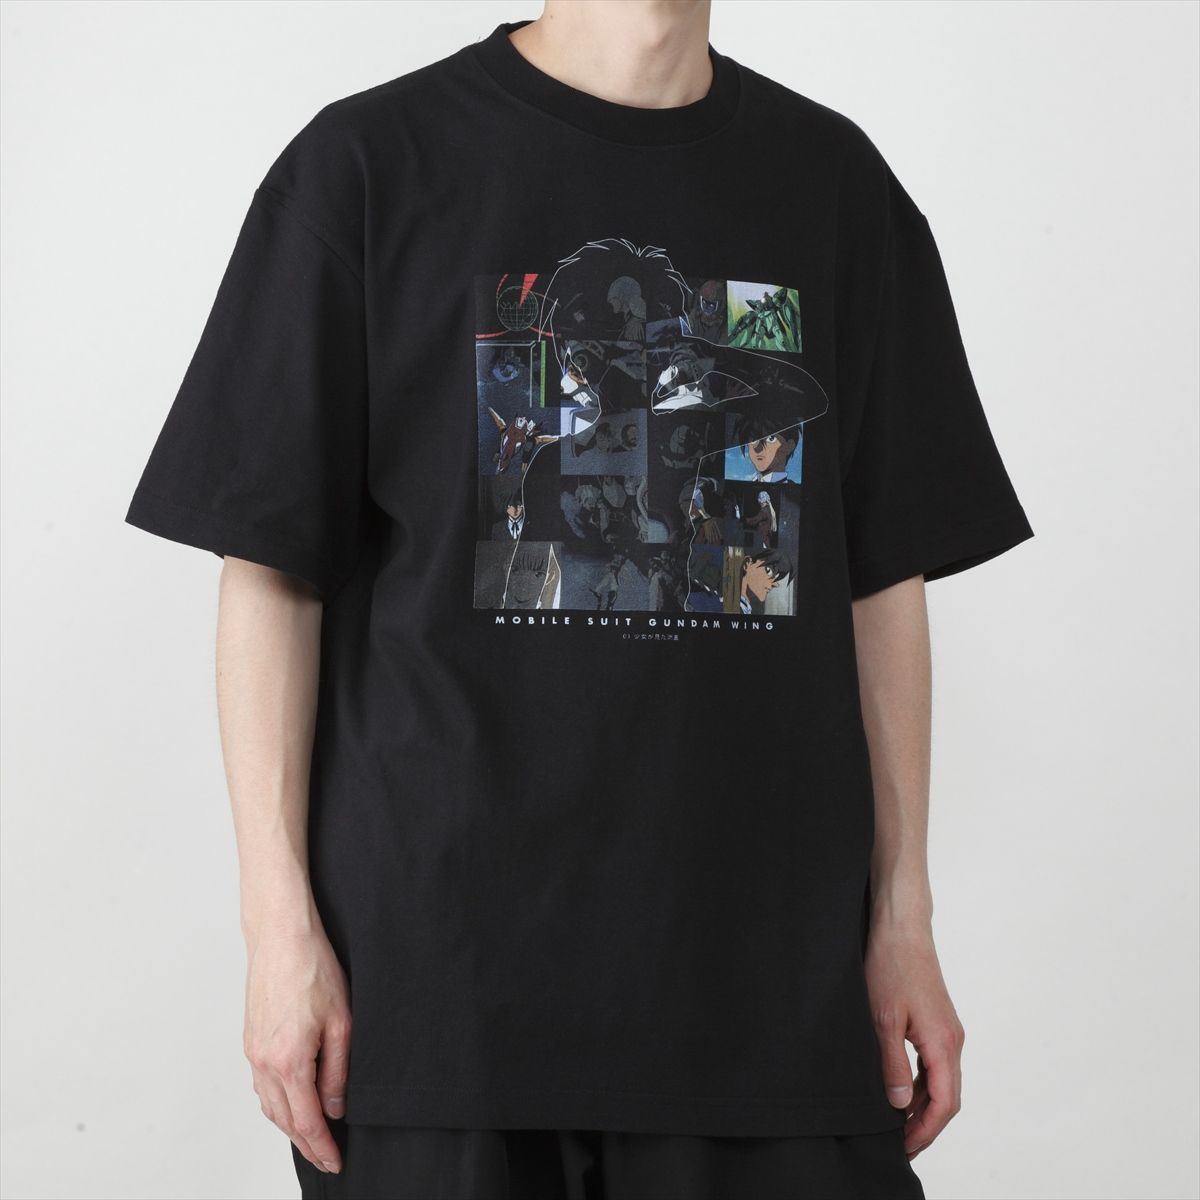 The Shooting Star She Saw T-shirt—Mobile Suit Gundam Wing